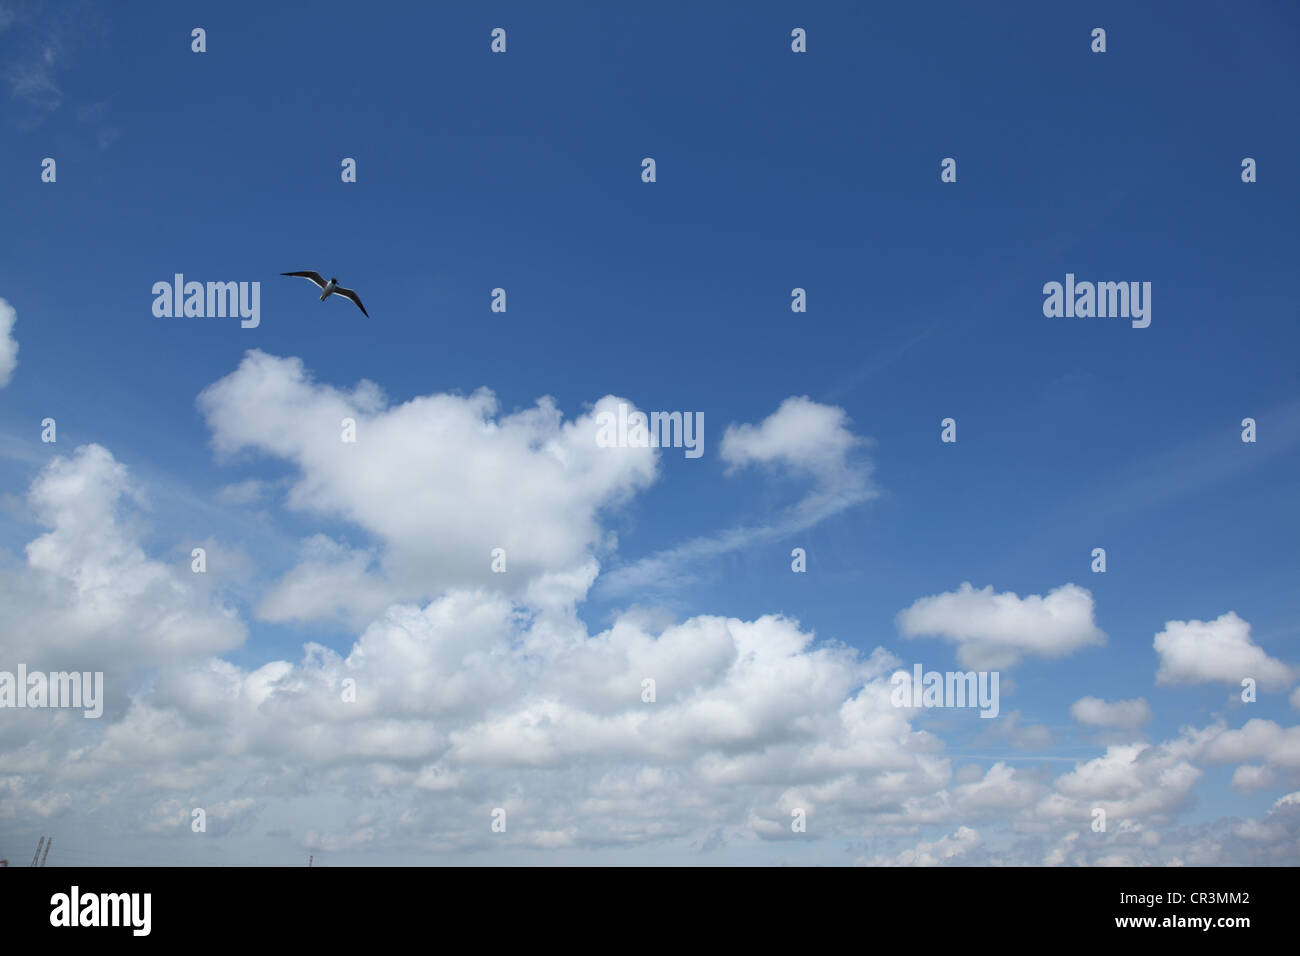 Seagull flying in sky with clouds - Stock Image